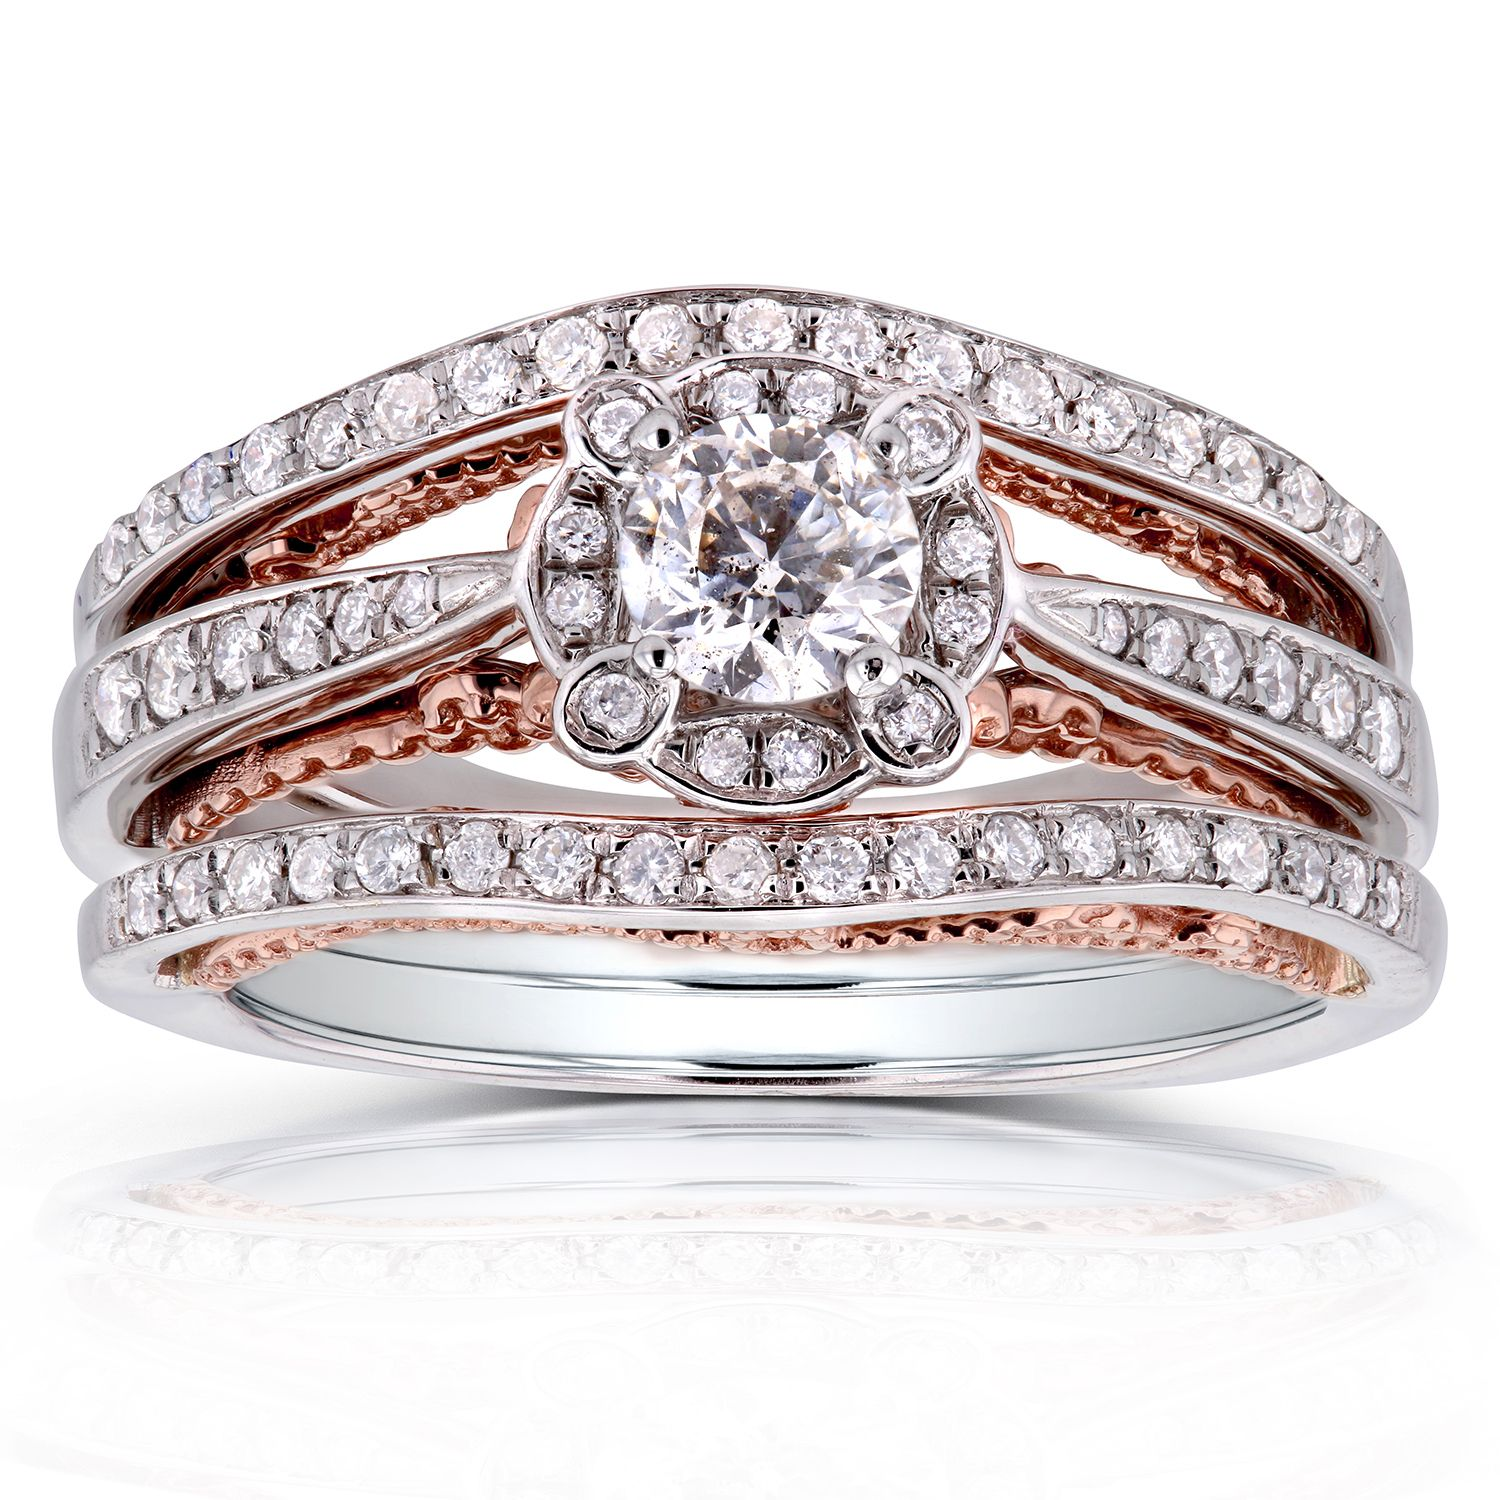 Annello 14k White Gold and Rose Gold Underside 5/8ct TDW Diamond Unique Halo Bridal Rings Set